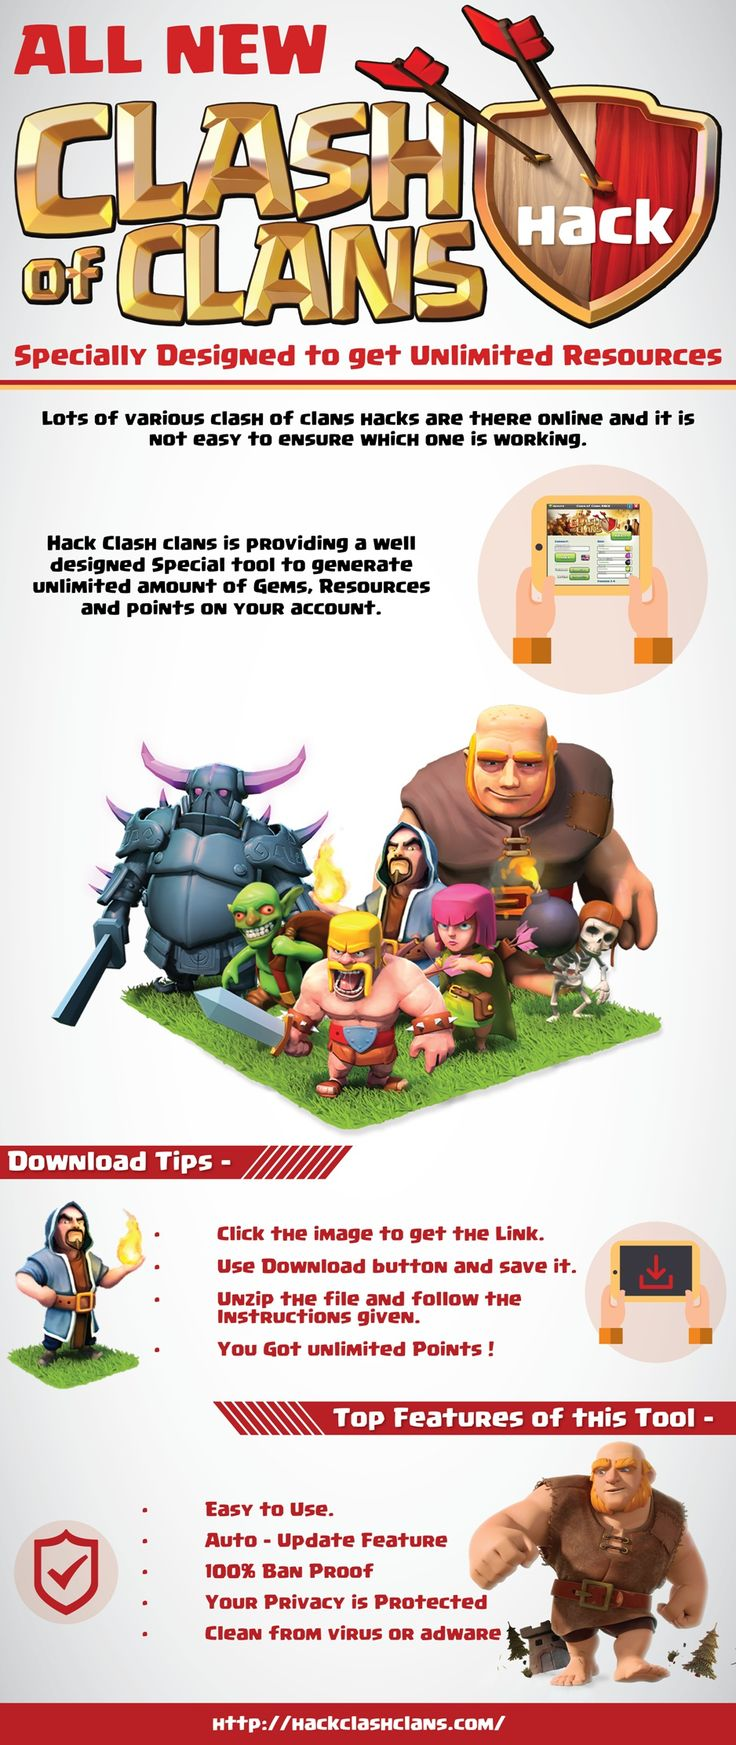 Several websites claim that their clash of clans hack works and you will be asked to complete a survey or accomplish a prerequisite that will only lead you to a fake download. Needless to say, all hack sites for COC were a scam. Check this out http://hackclashclans.com/ for more info.